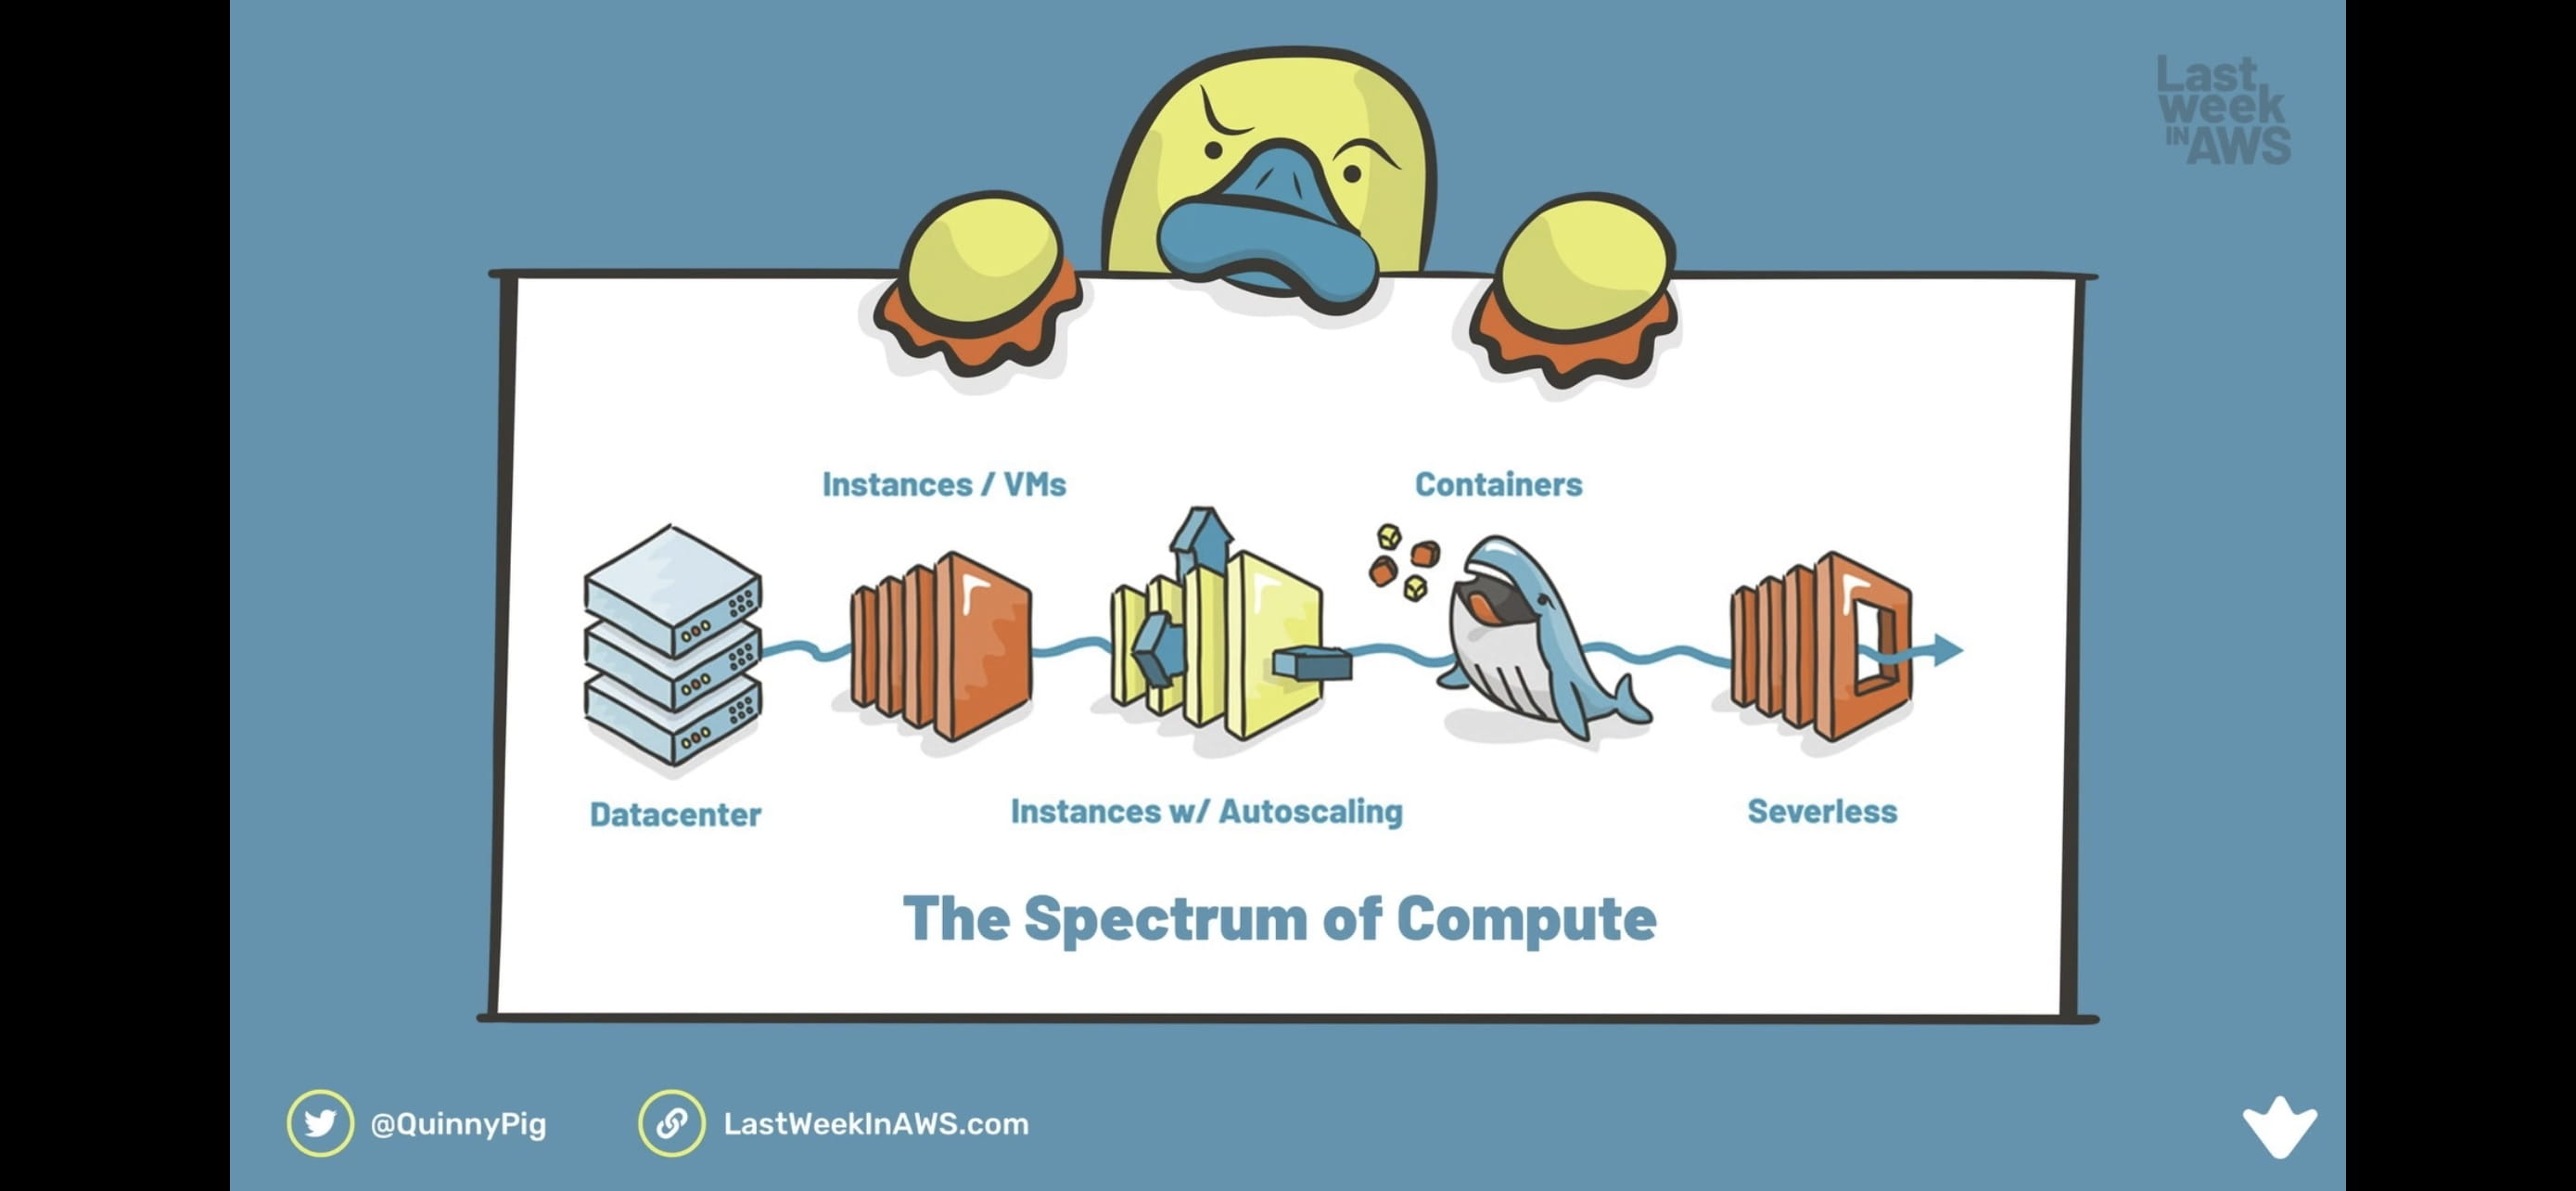 The Spectrum of Compute